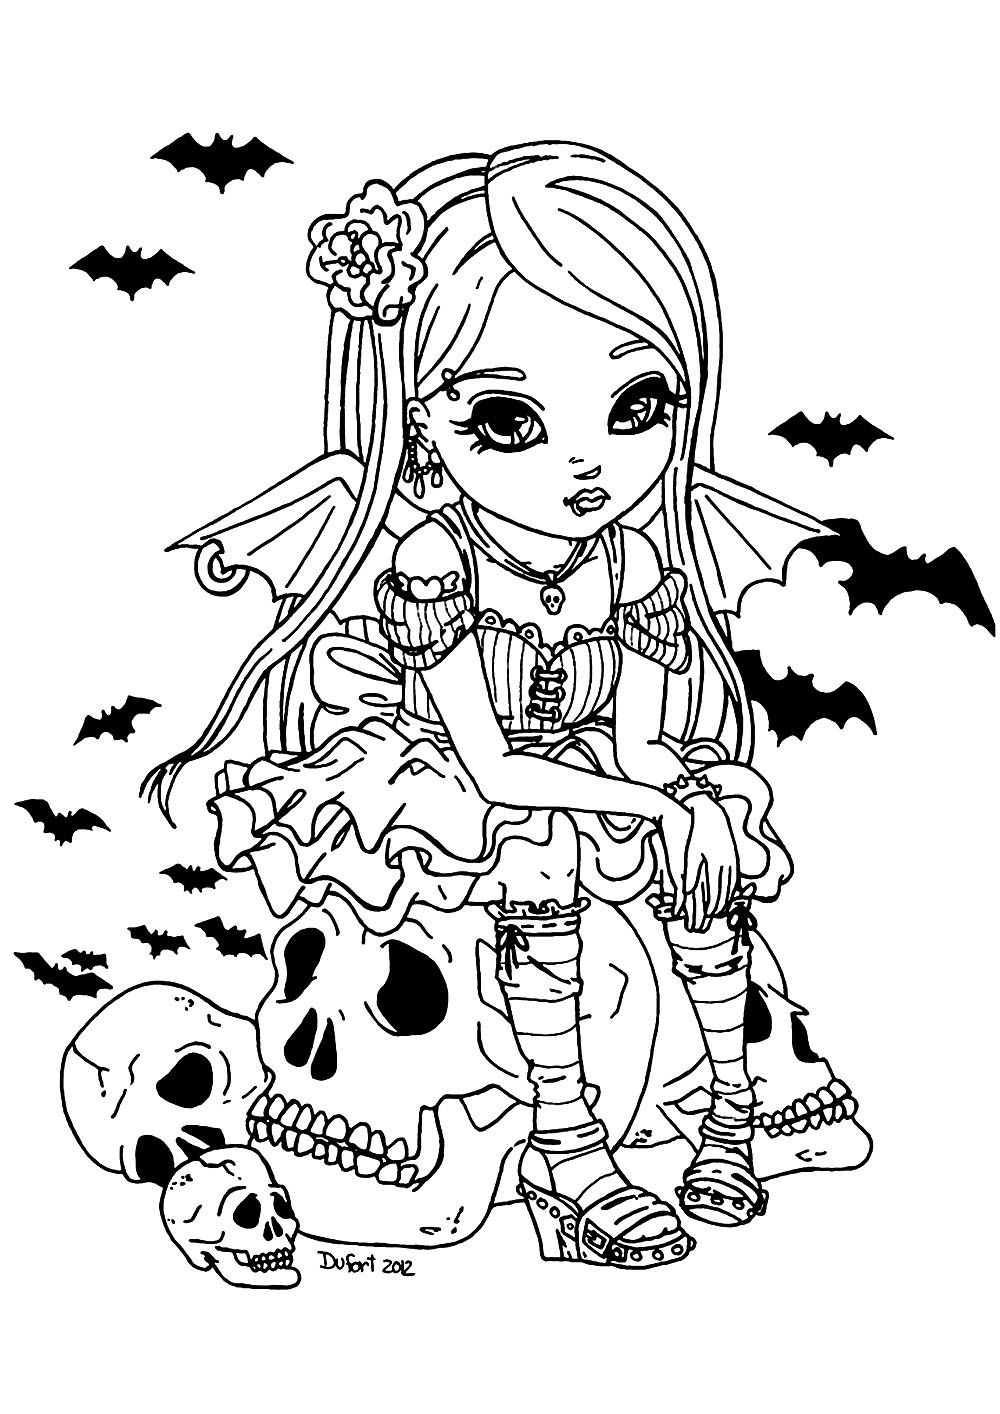 Little Vampire Girl Color This Cute Little Vampire Girl Sitting On A Big Skull From The Witch Coloring Pages Halloween Coloring Pages Skull Coloring Pages